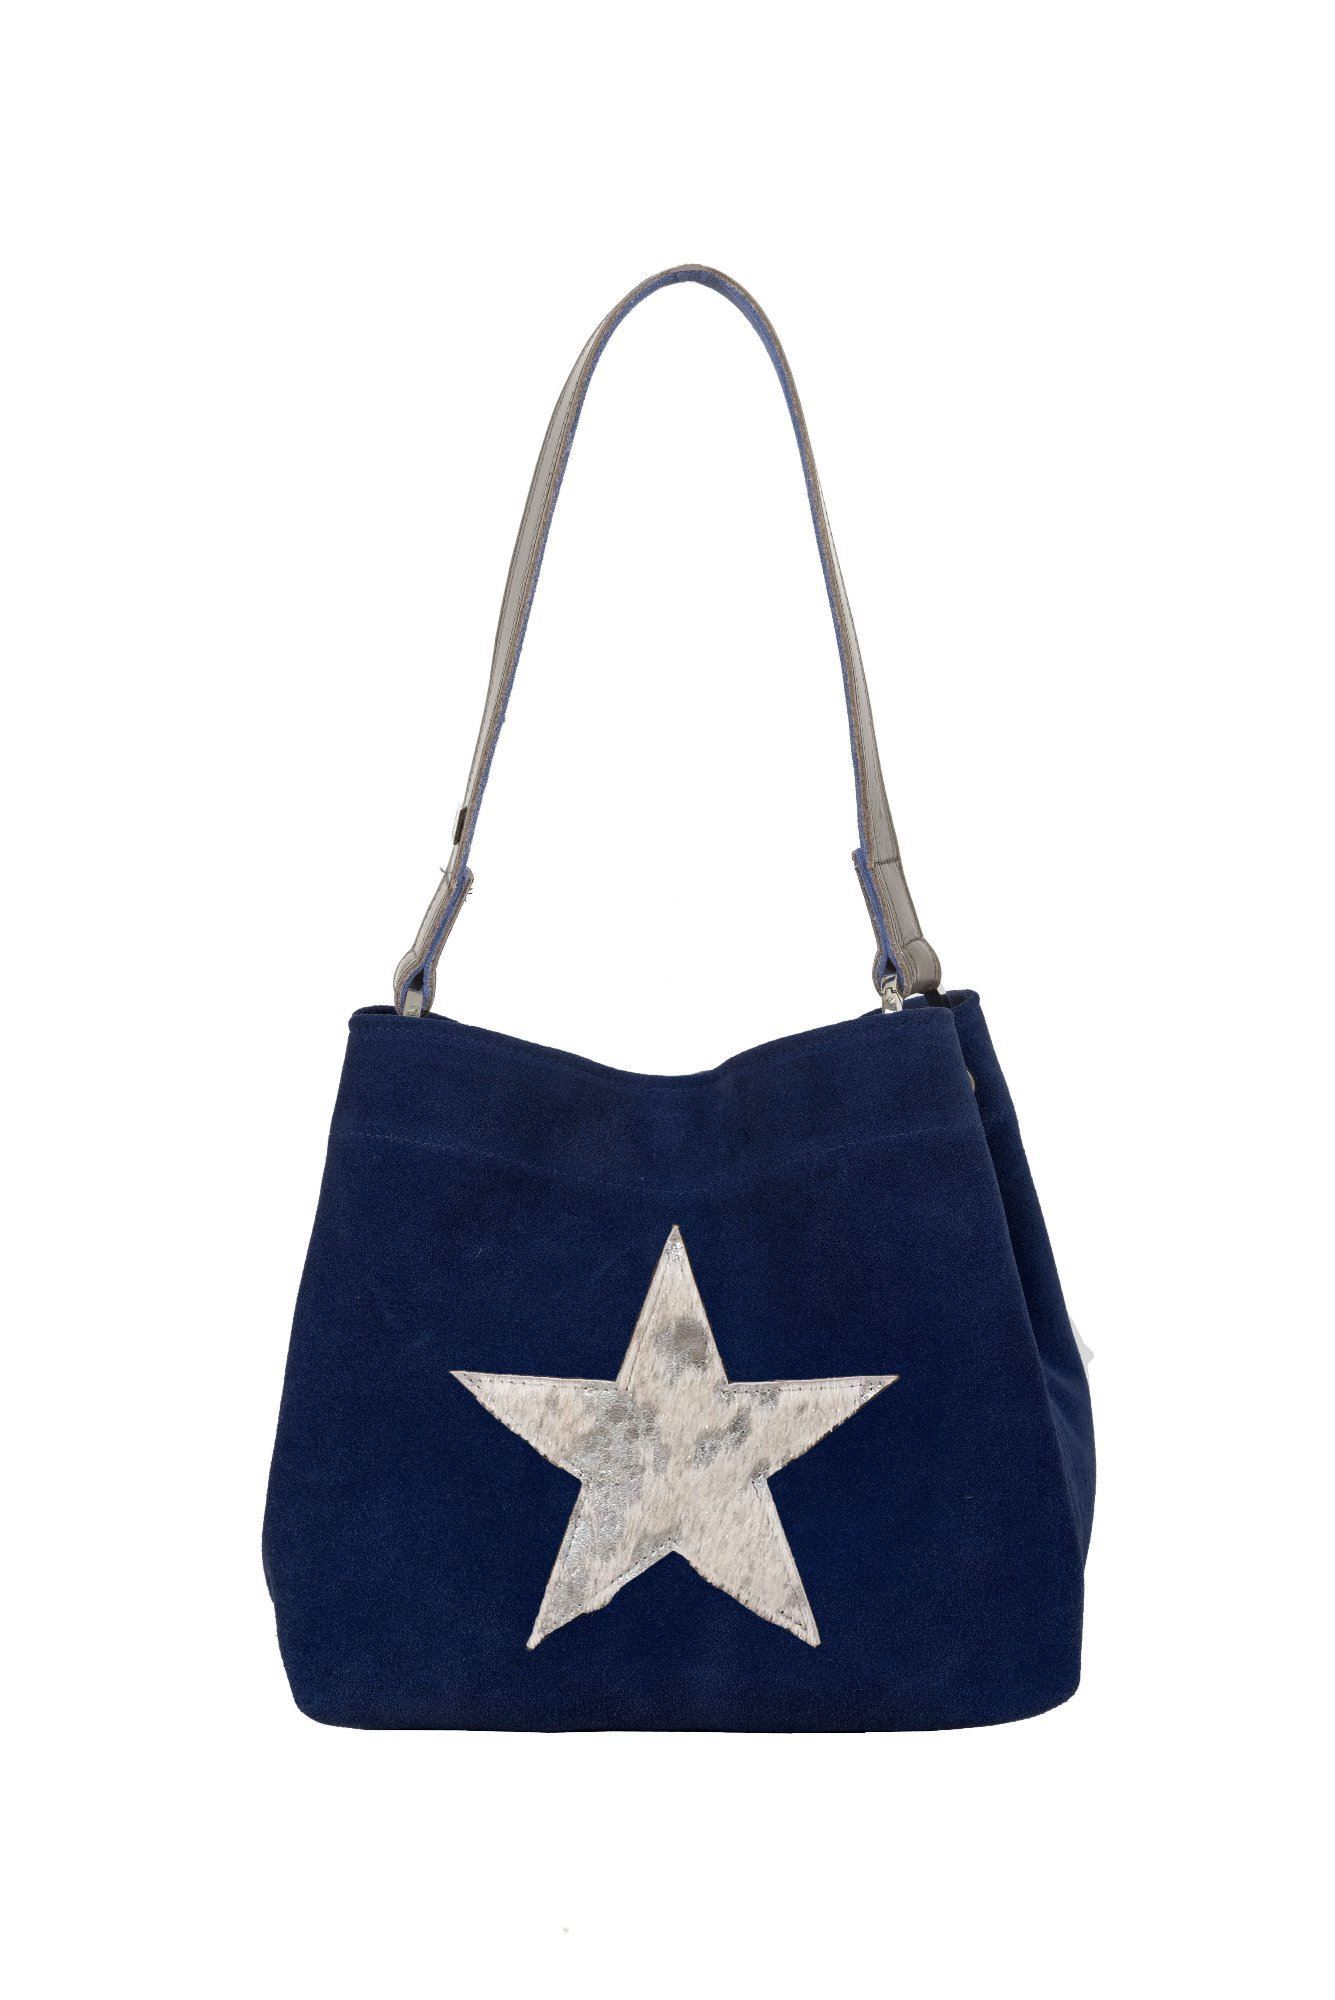 Star Crossbody/Shoulder Bag - Riggster